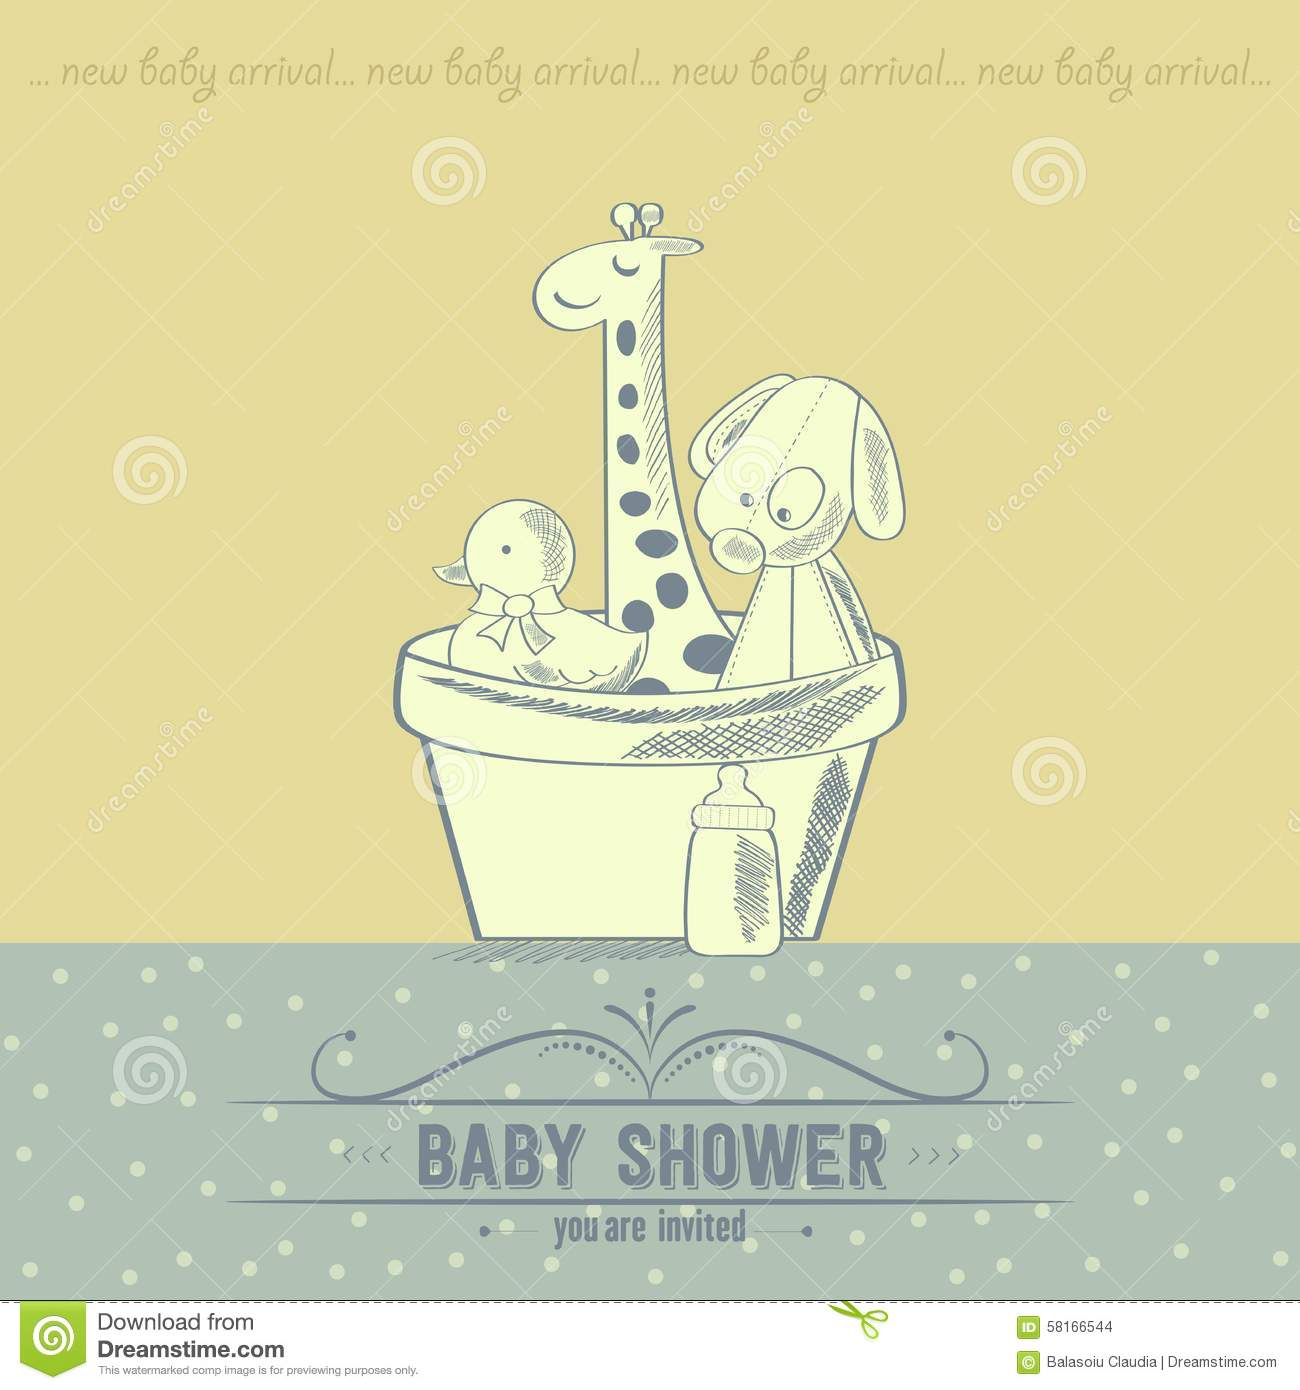 Baby Shower Card With Retro Toys Stock Vector Illustration Of Draw